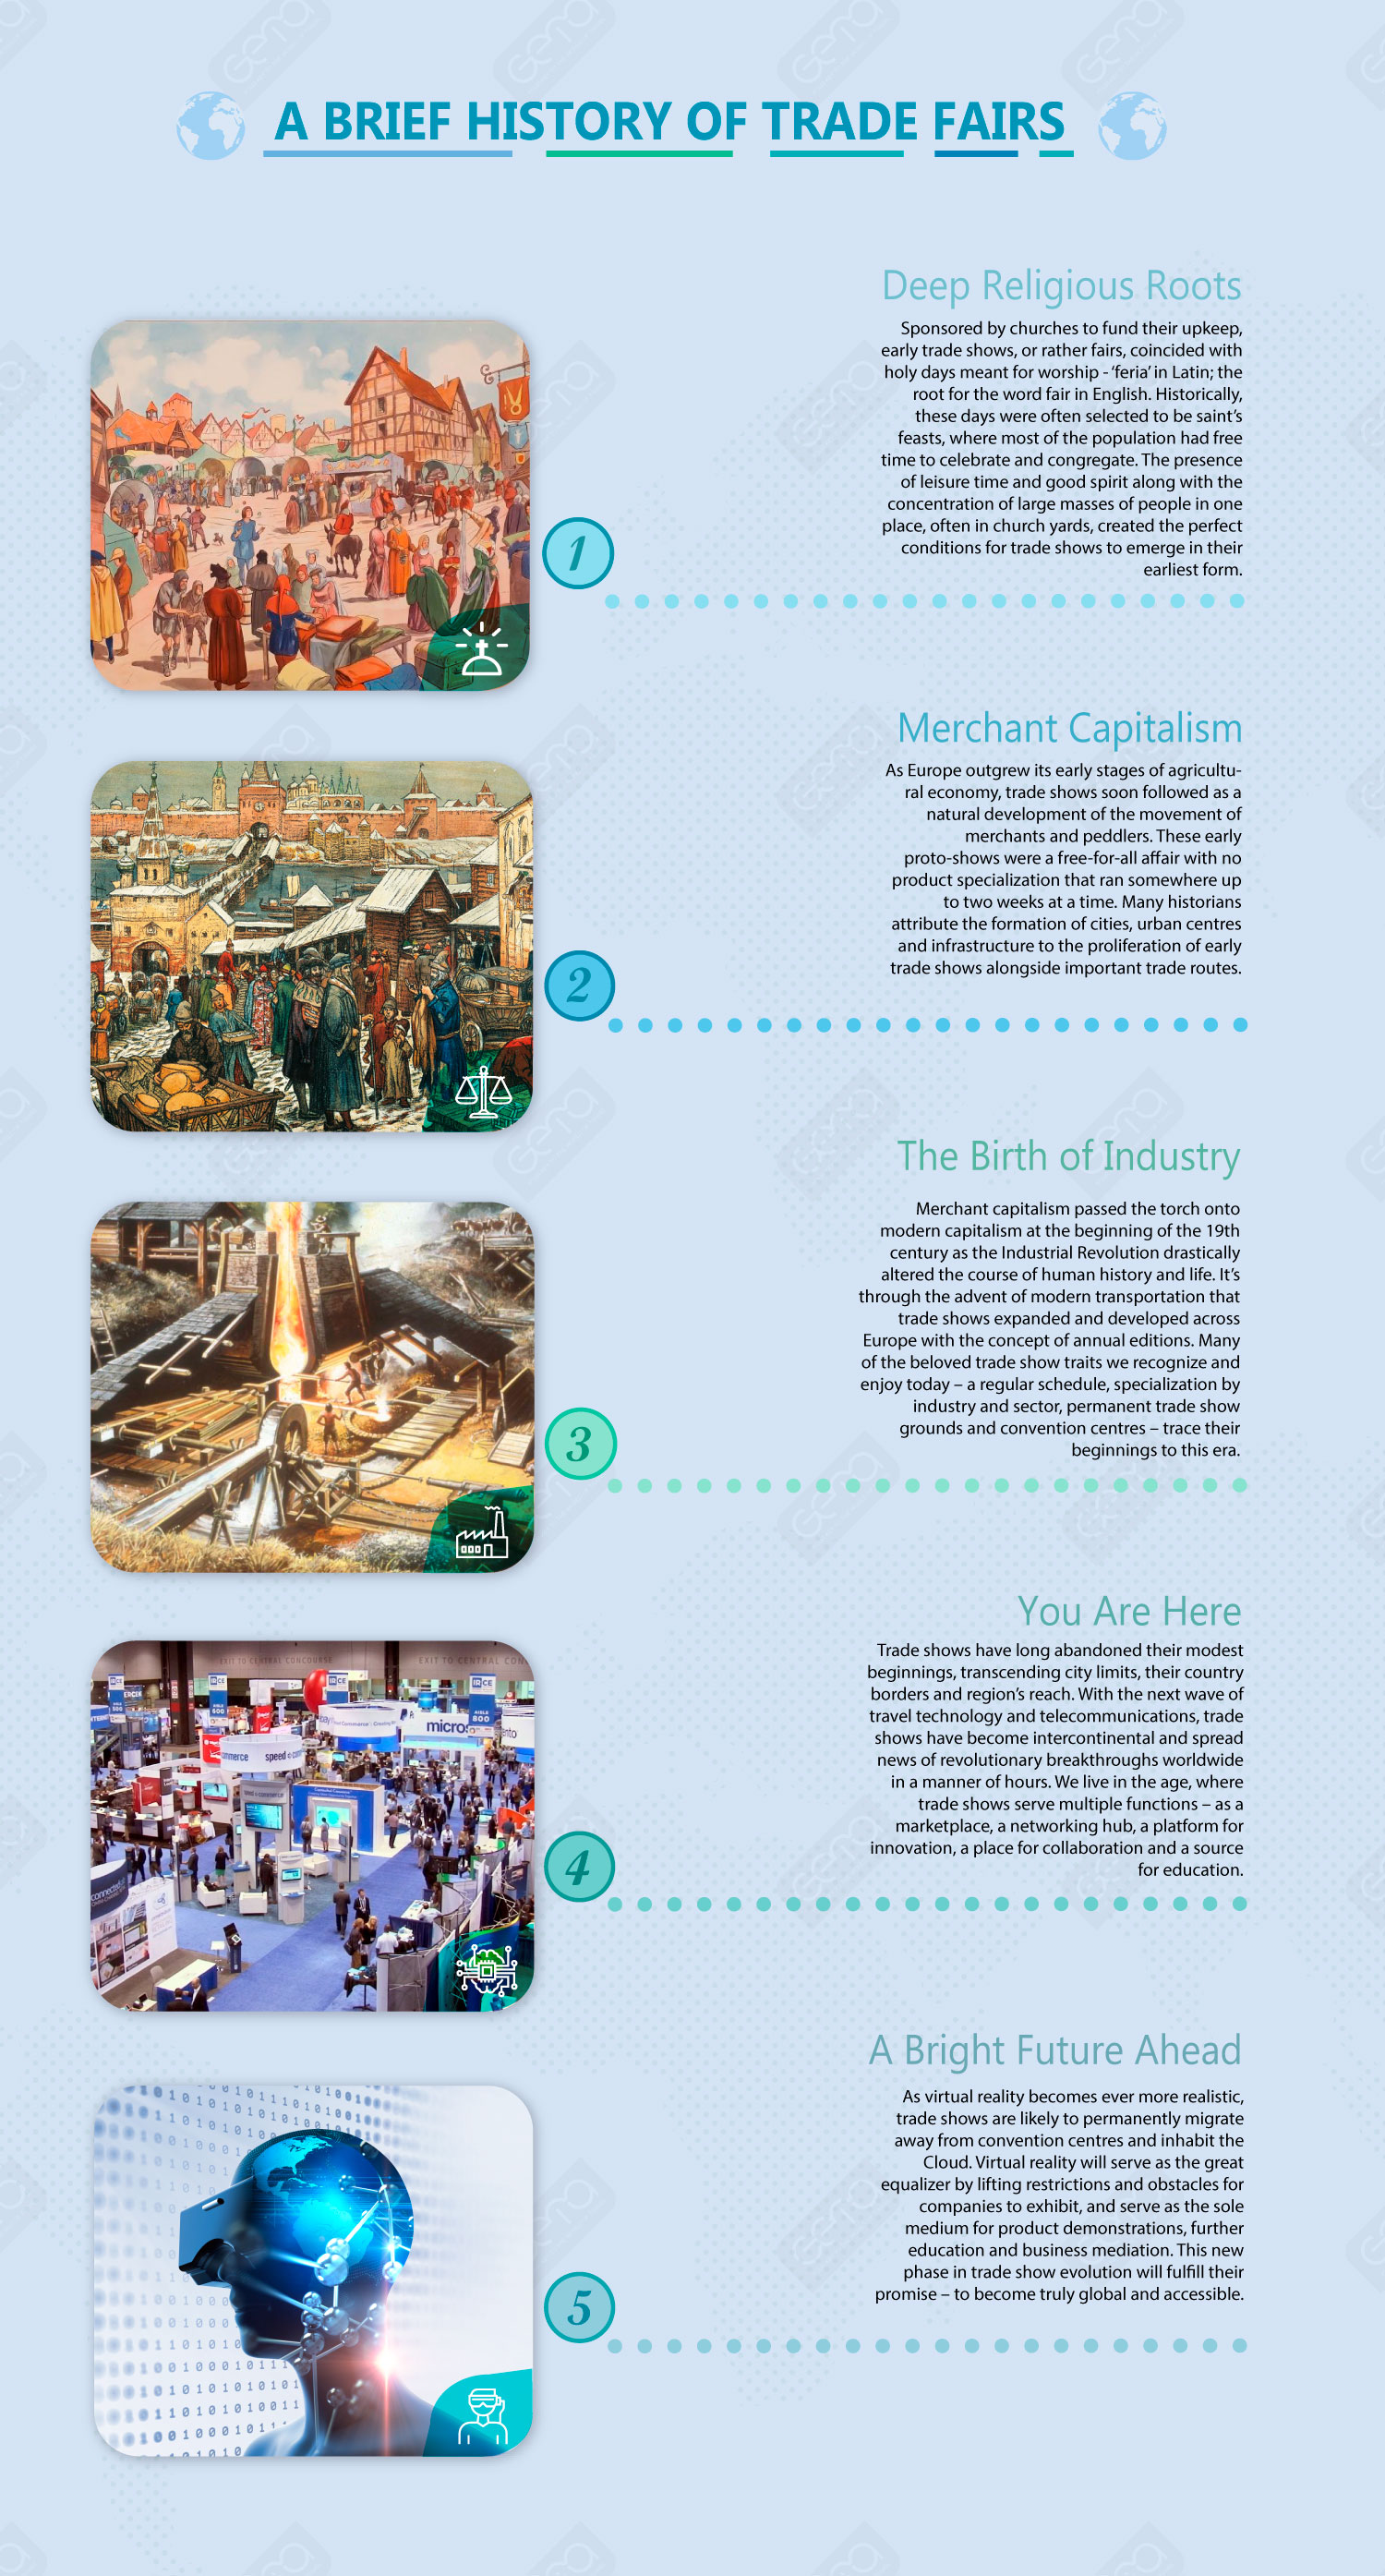 A Brief History of Trade Fairs